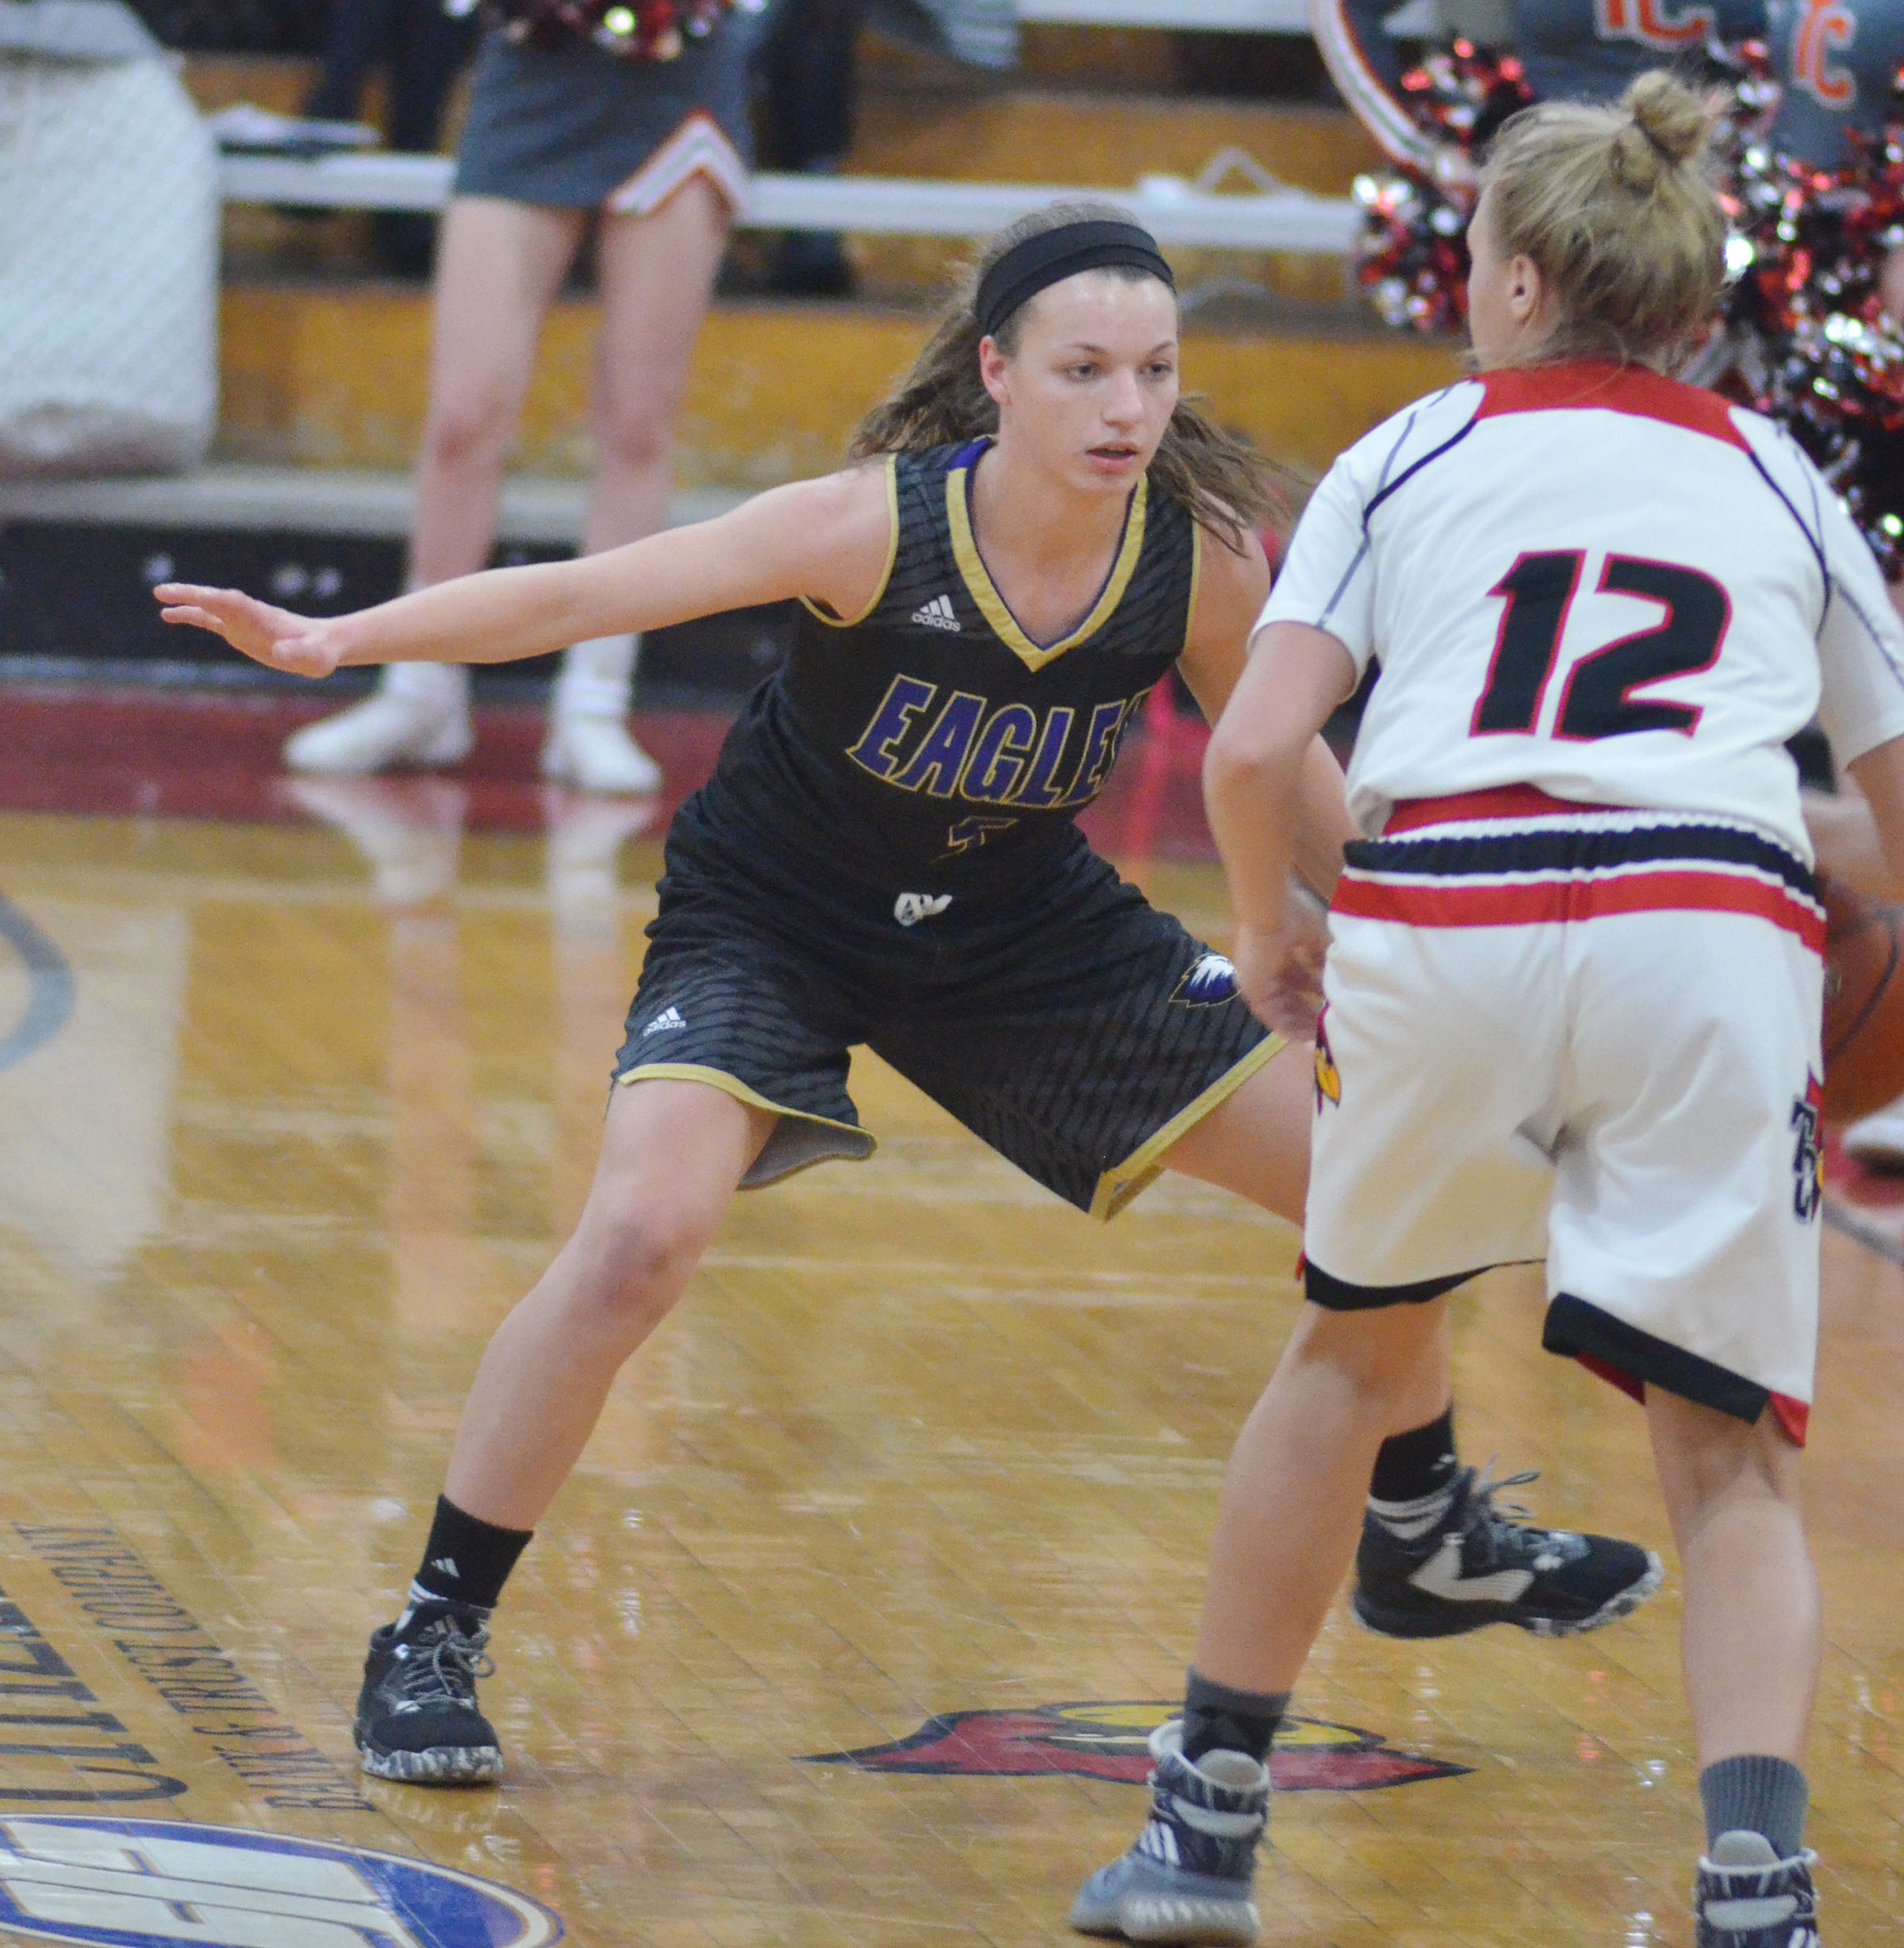 CHS senior Caylie Blair plays defense.